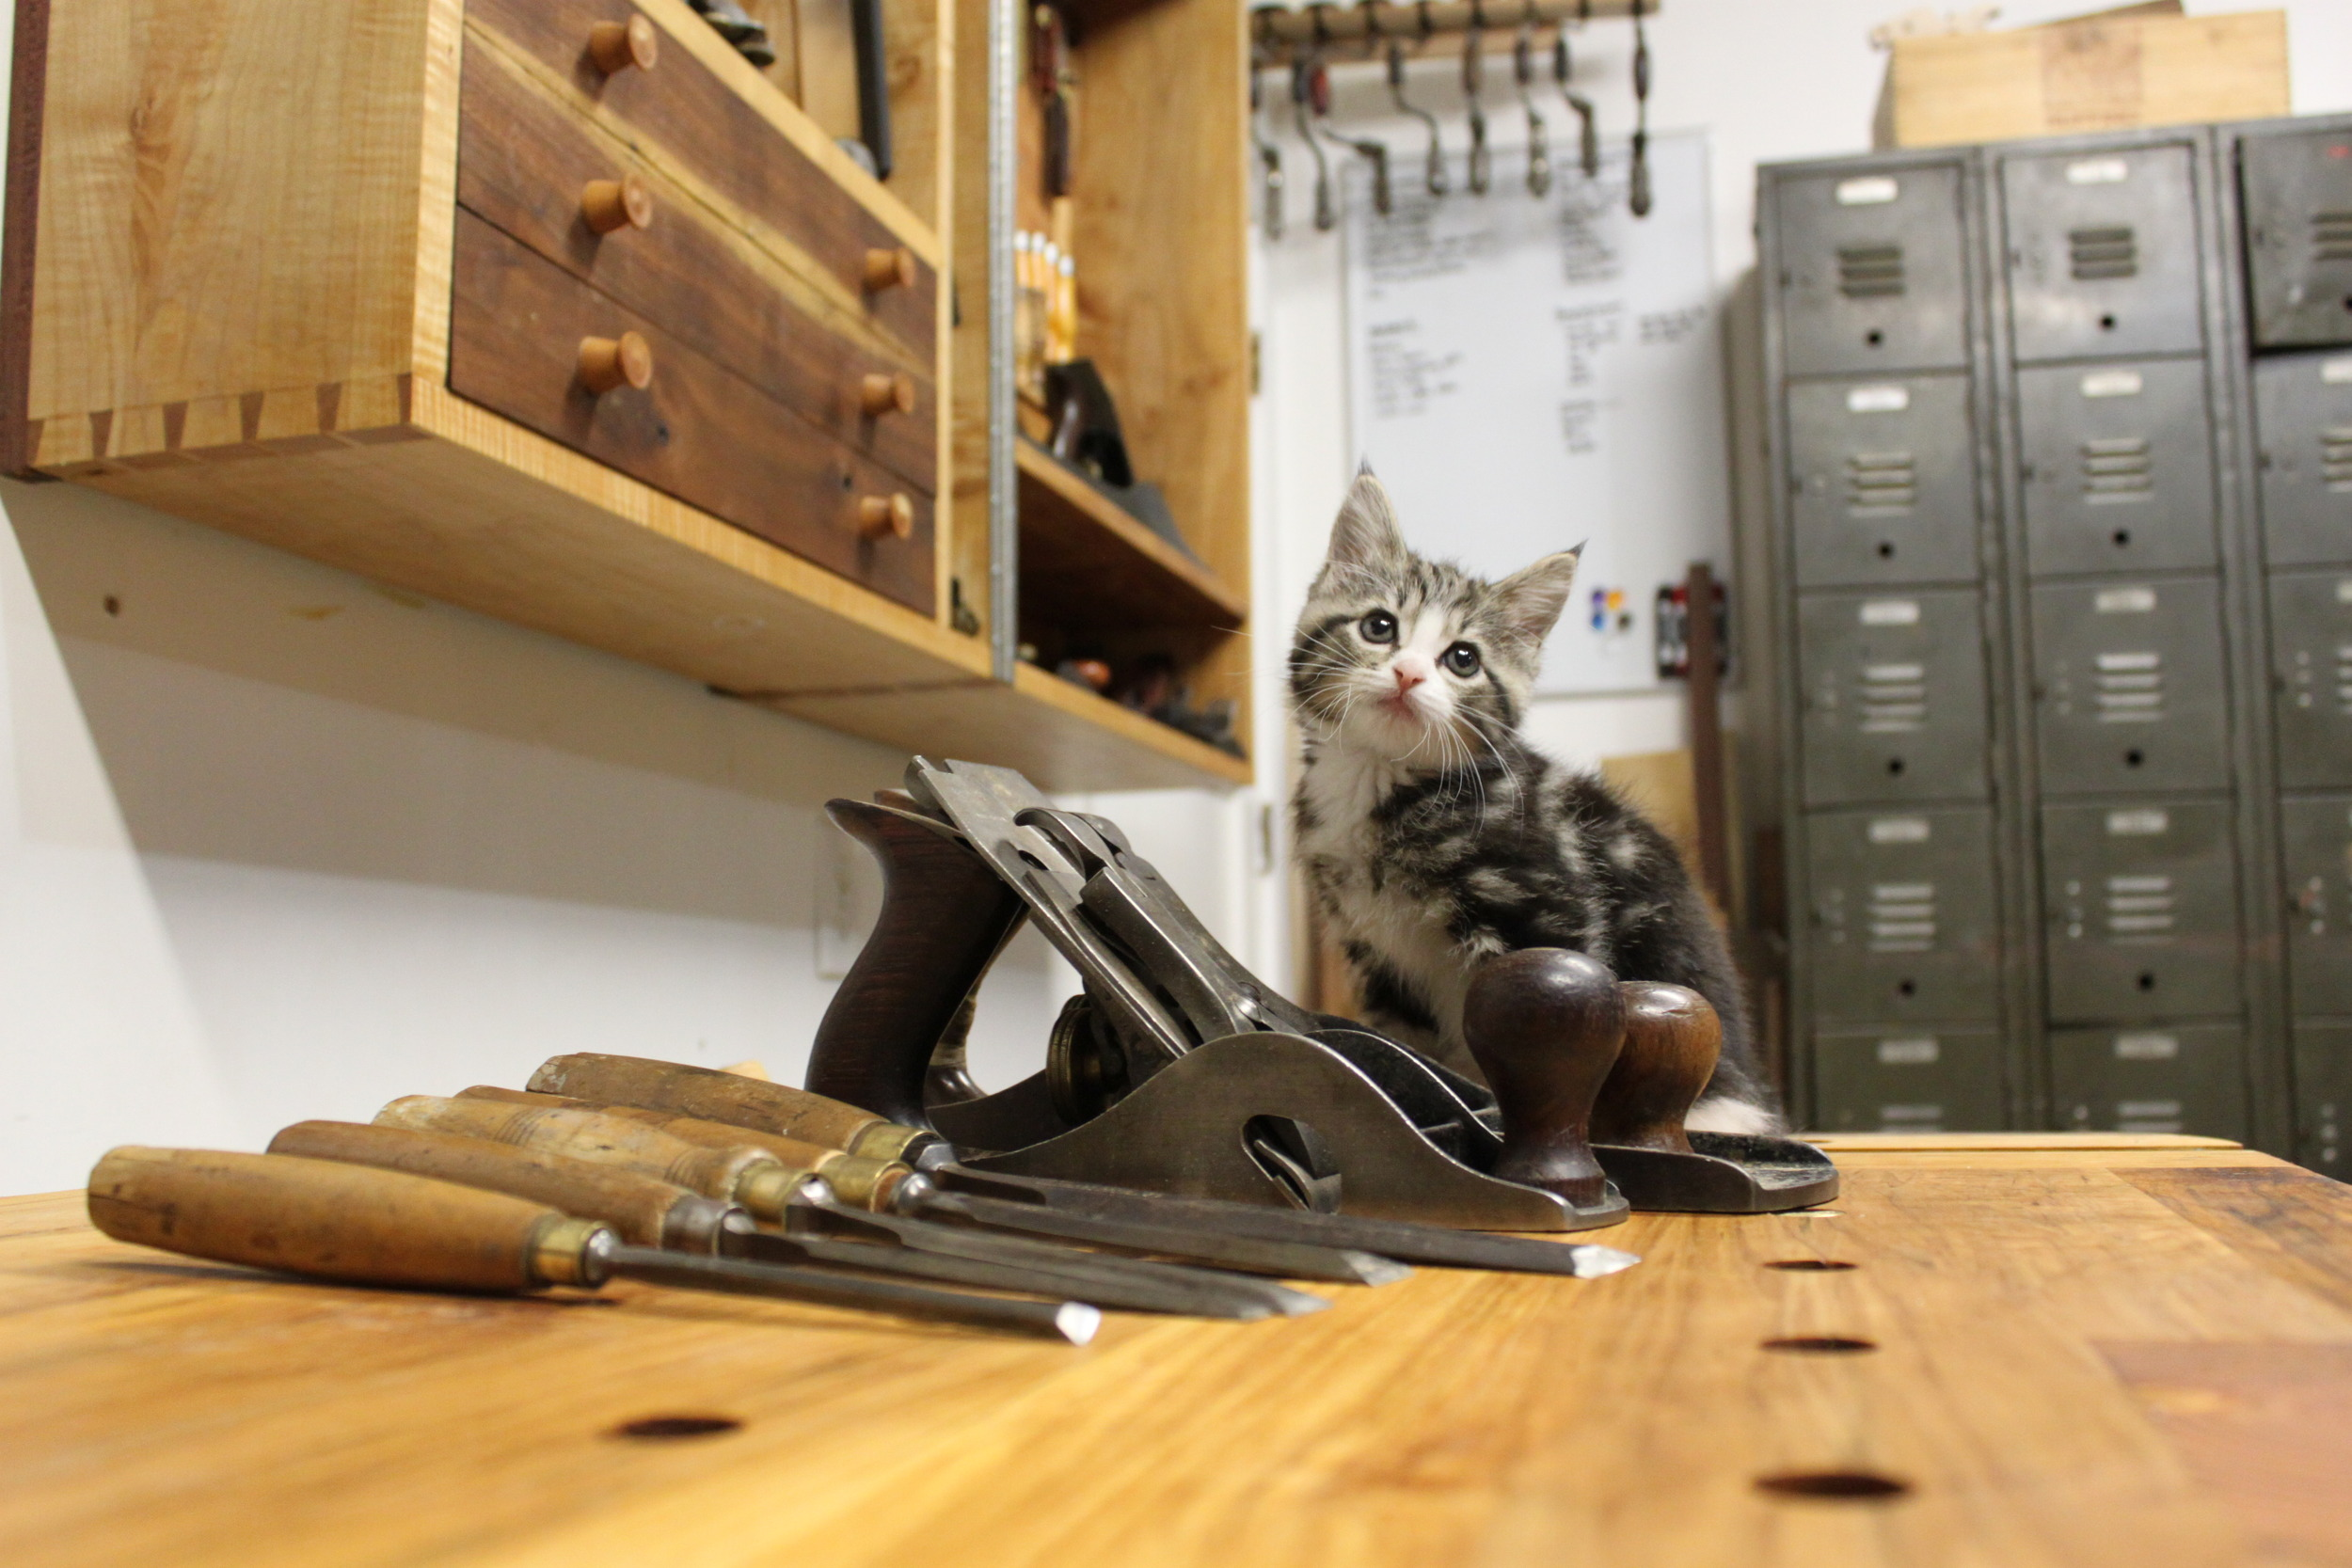 Shop kitty is ready to help!